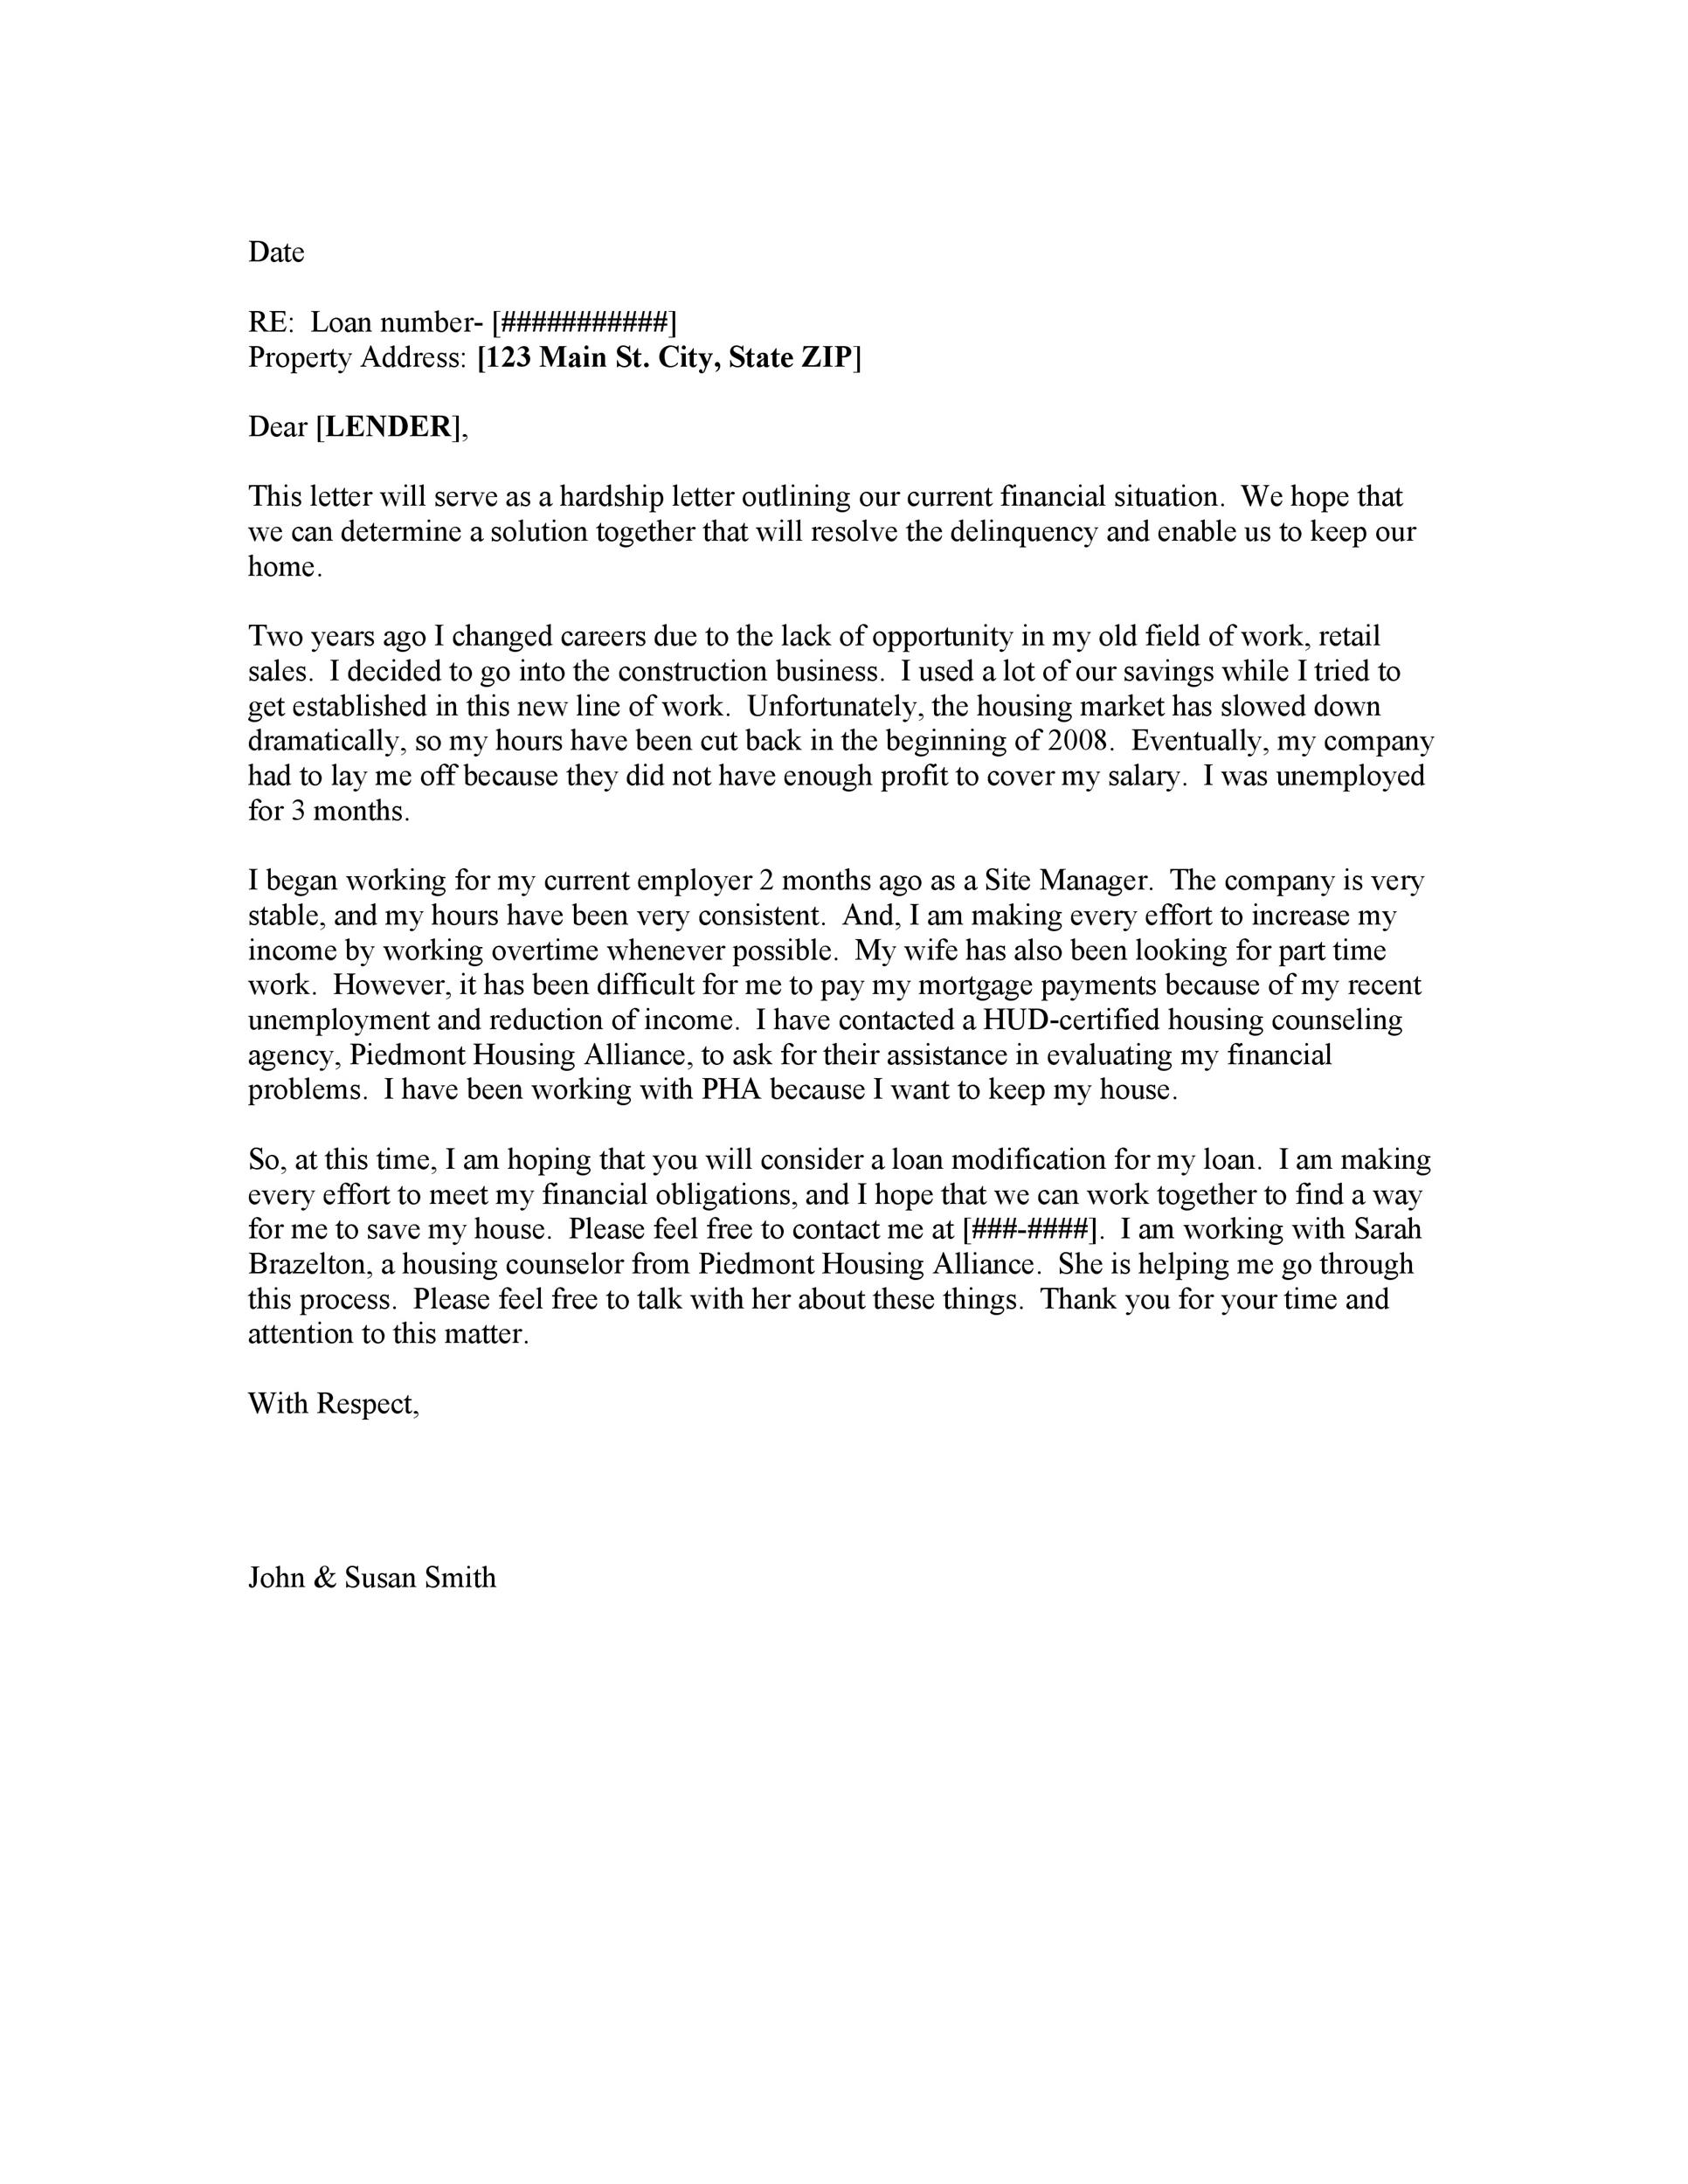 Short Sale Hardship Letter Template from templatelab.com